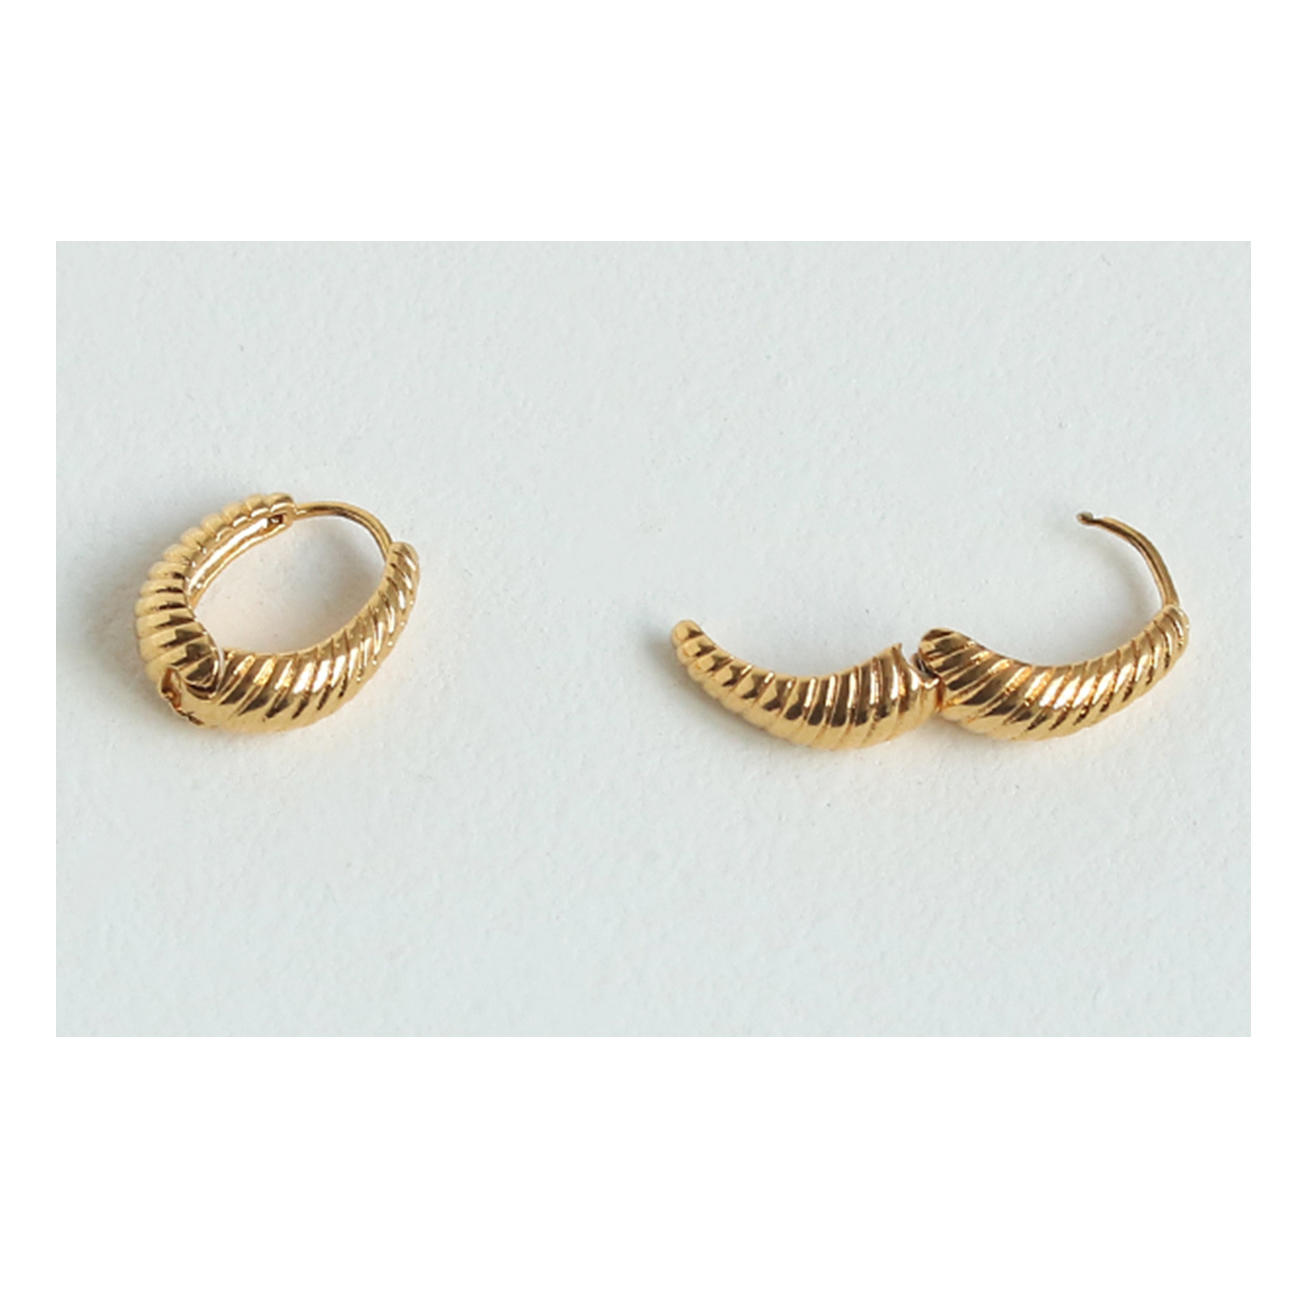 product-Fine jewelry 18k gold plated Simple Braid Twisted Petite Hoop Earring women-BEYALY-img-1